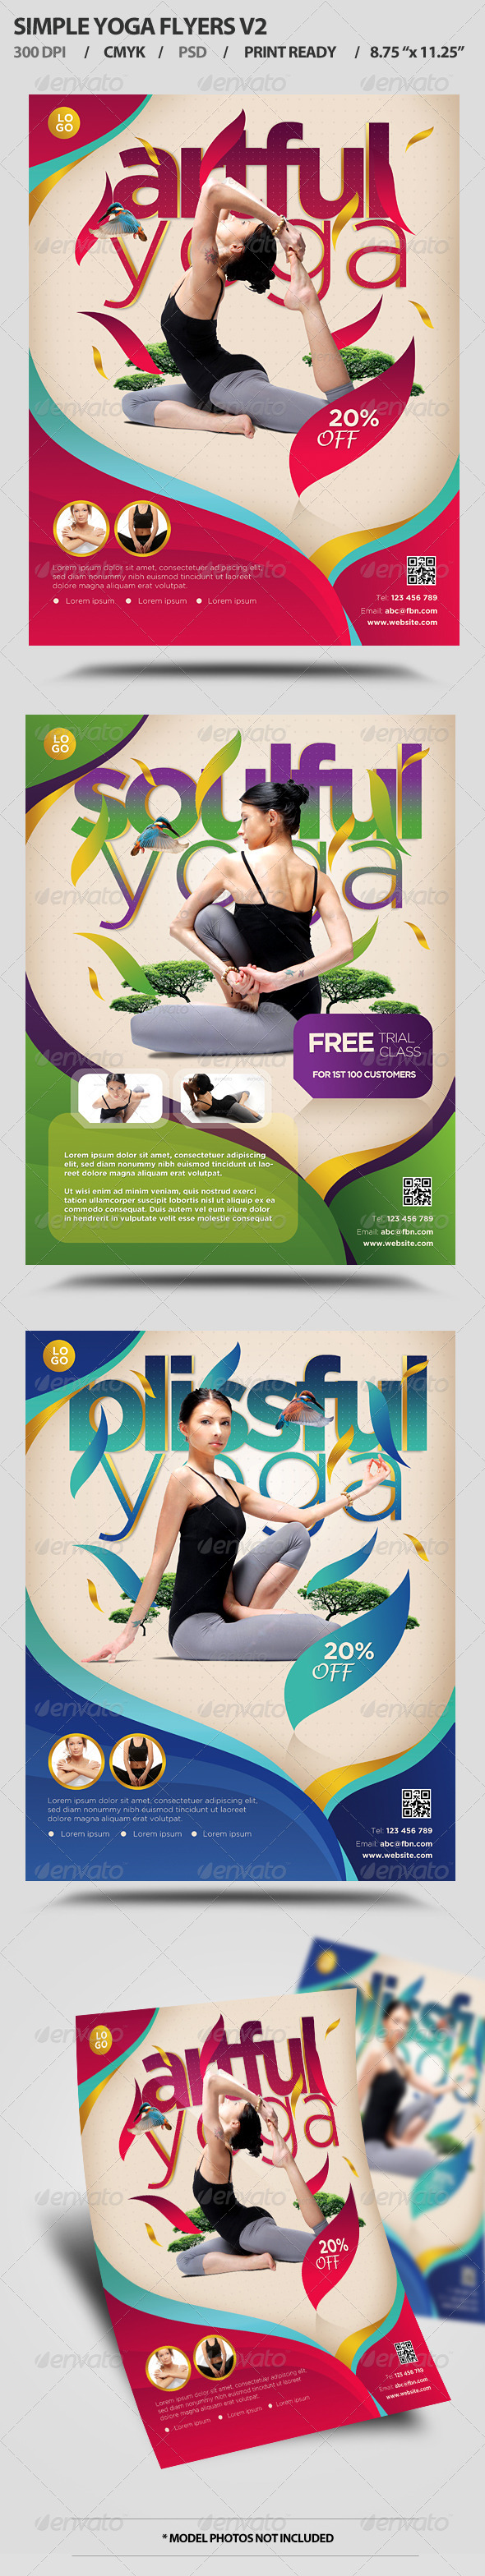 GraphicRiver Simple Yoga Flyers V2 5611122